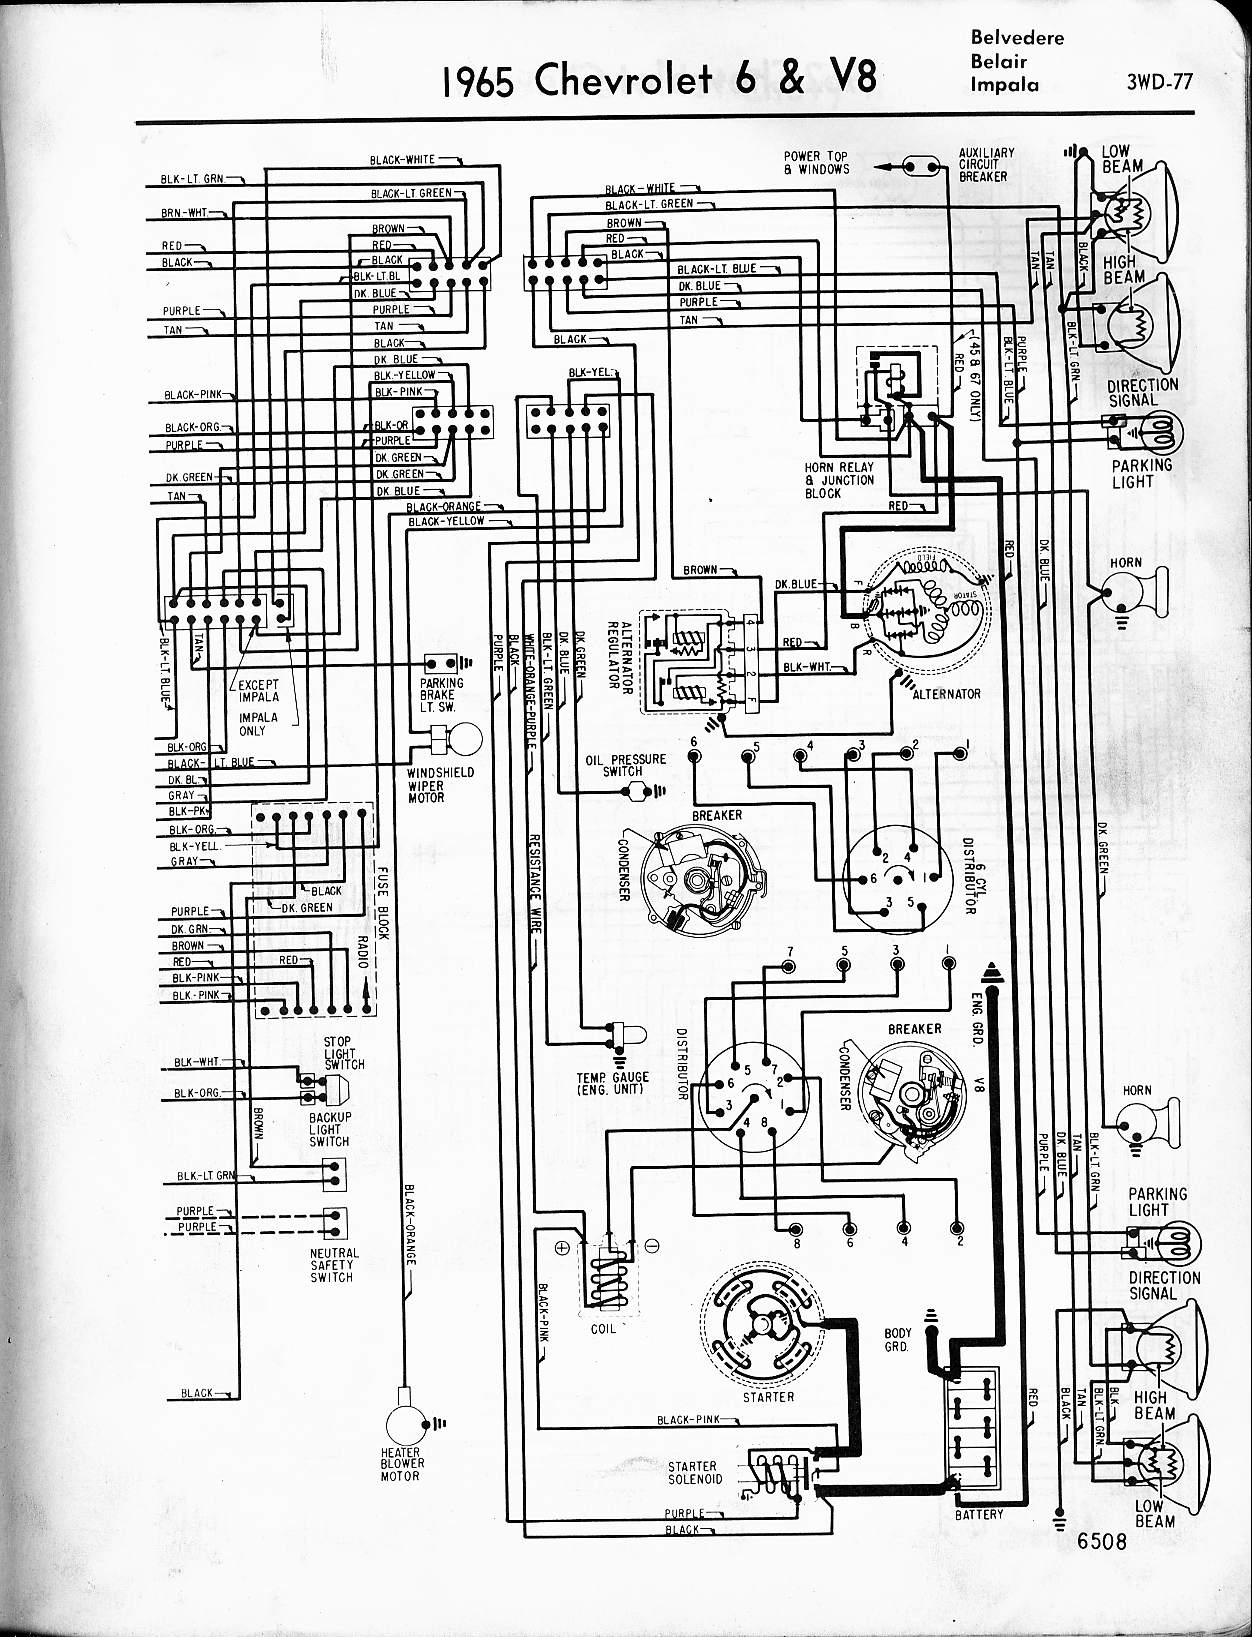 MWireChev65_3WD 077 chevy diagrams 1967 chevelle wiring diagram pdf at soozxer.org